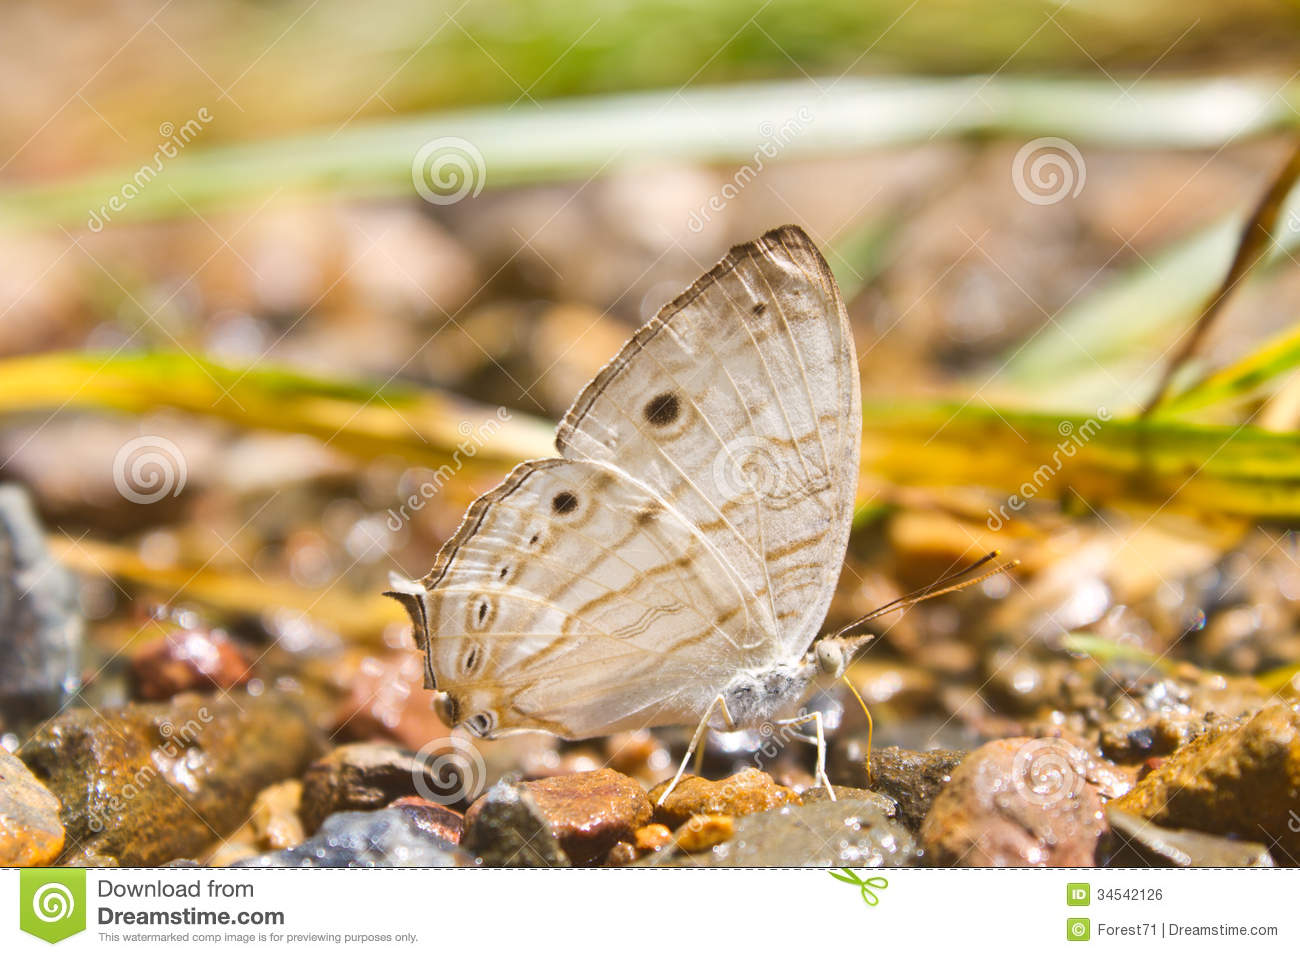 Butterflies are absorption minerals on the ground